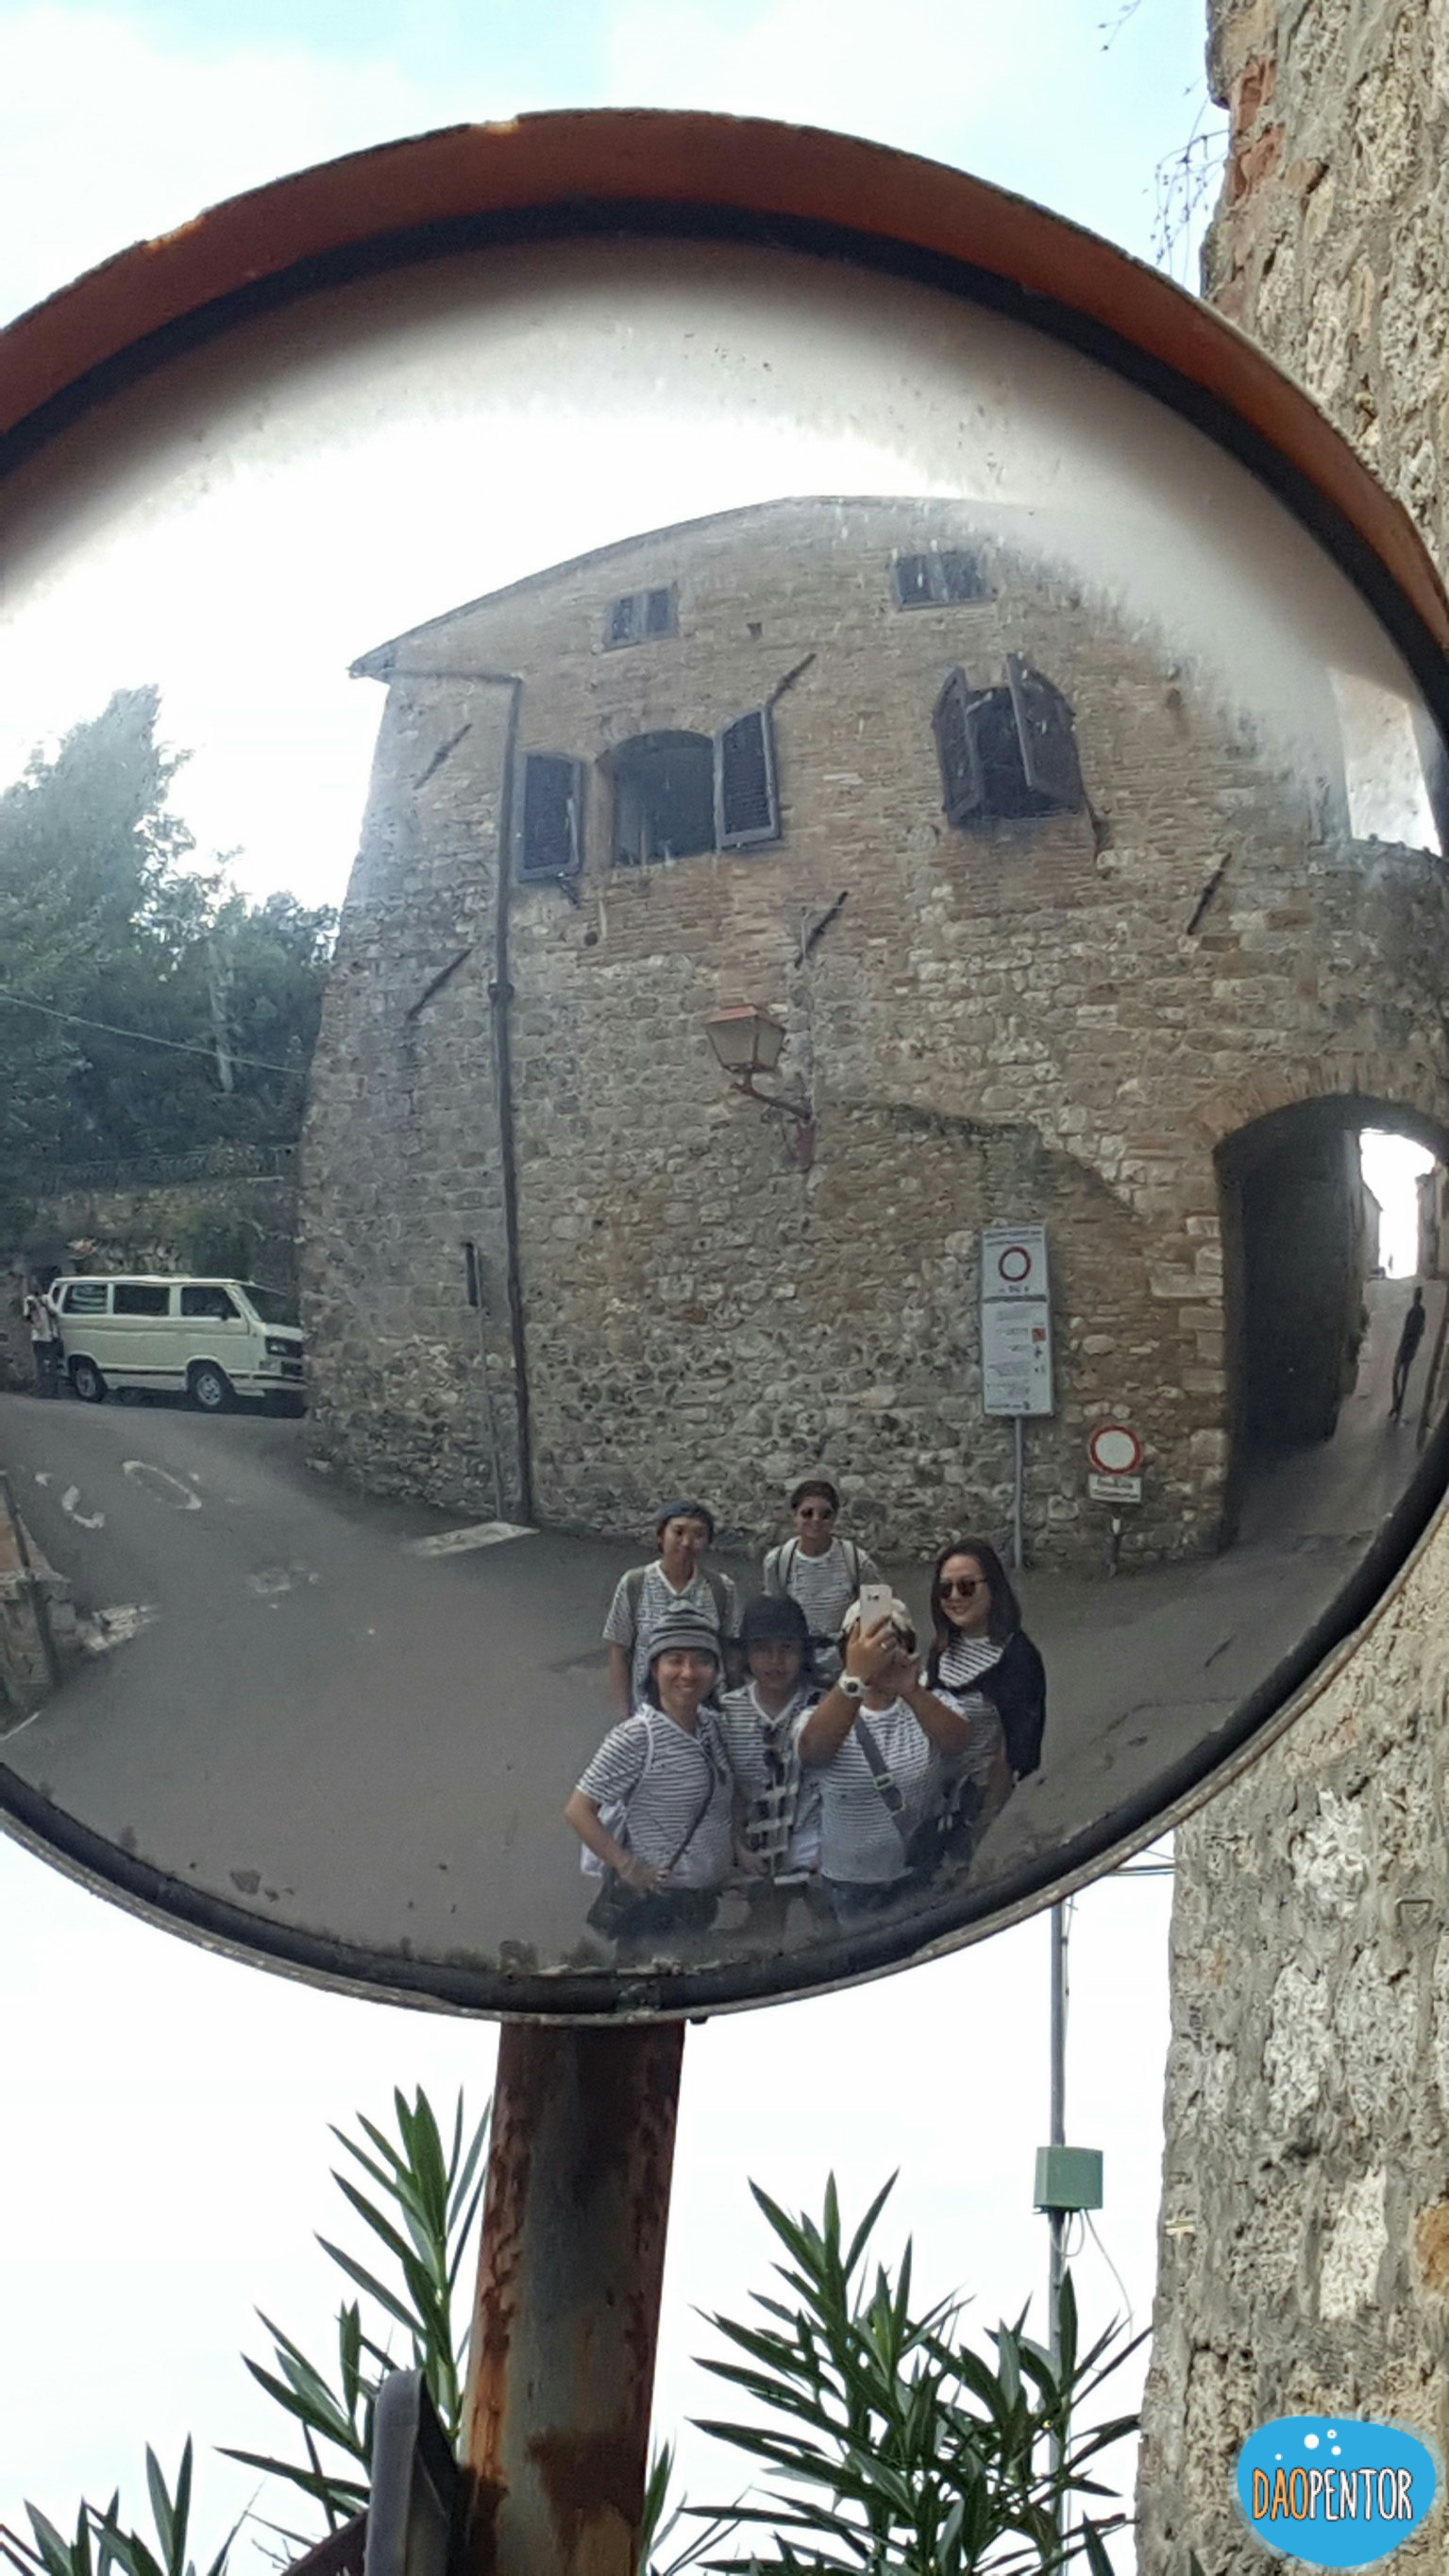 sangimignano italy trip with daopentorpage